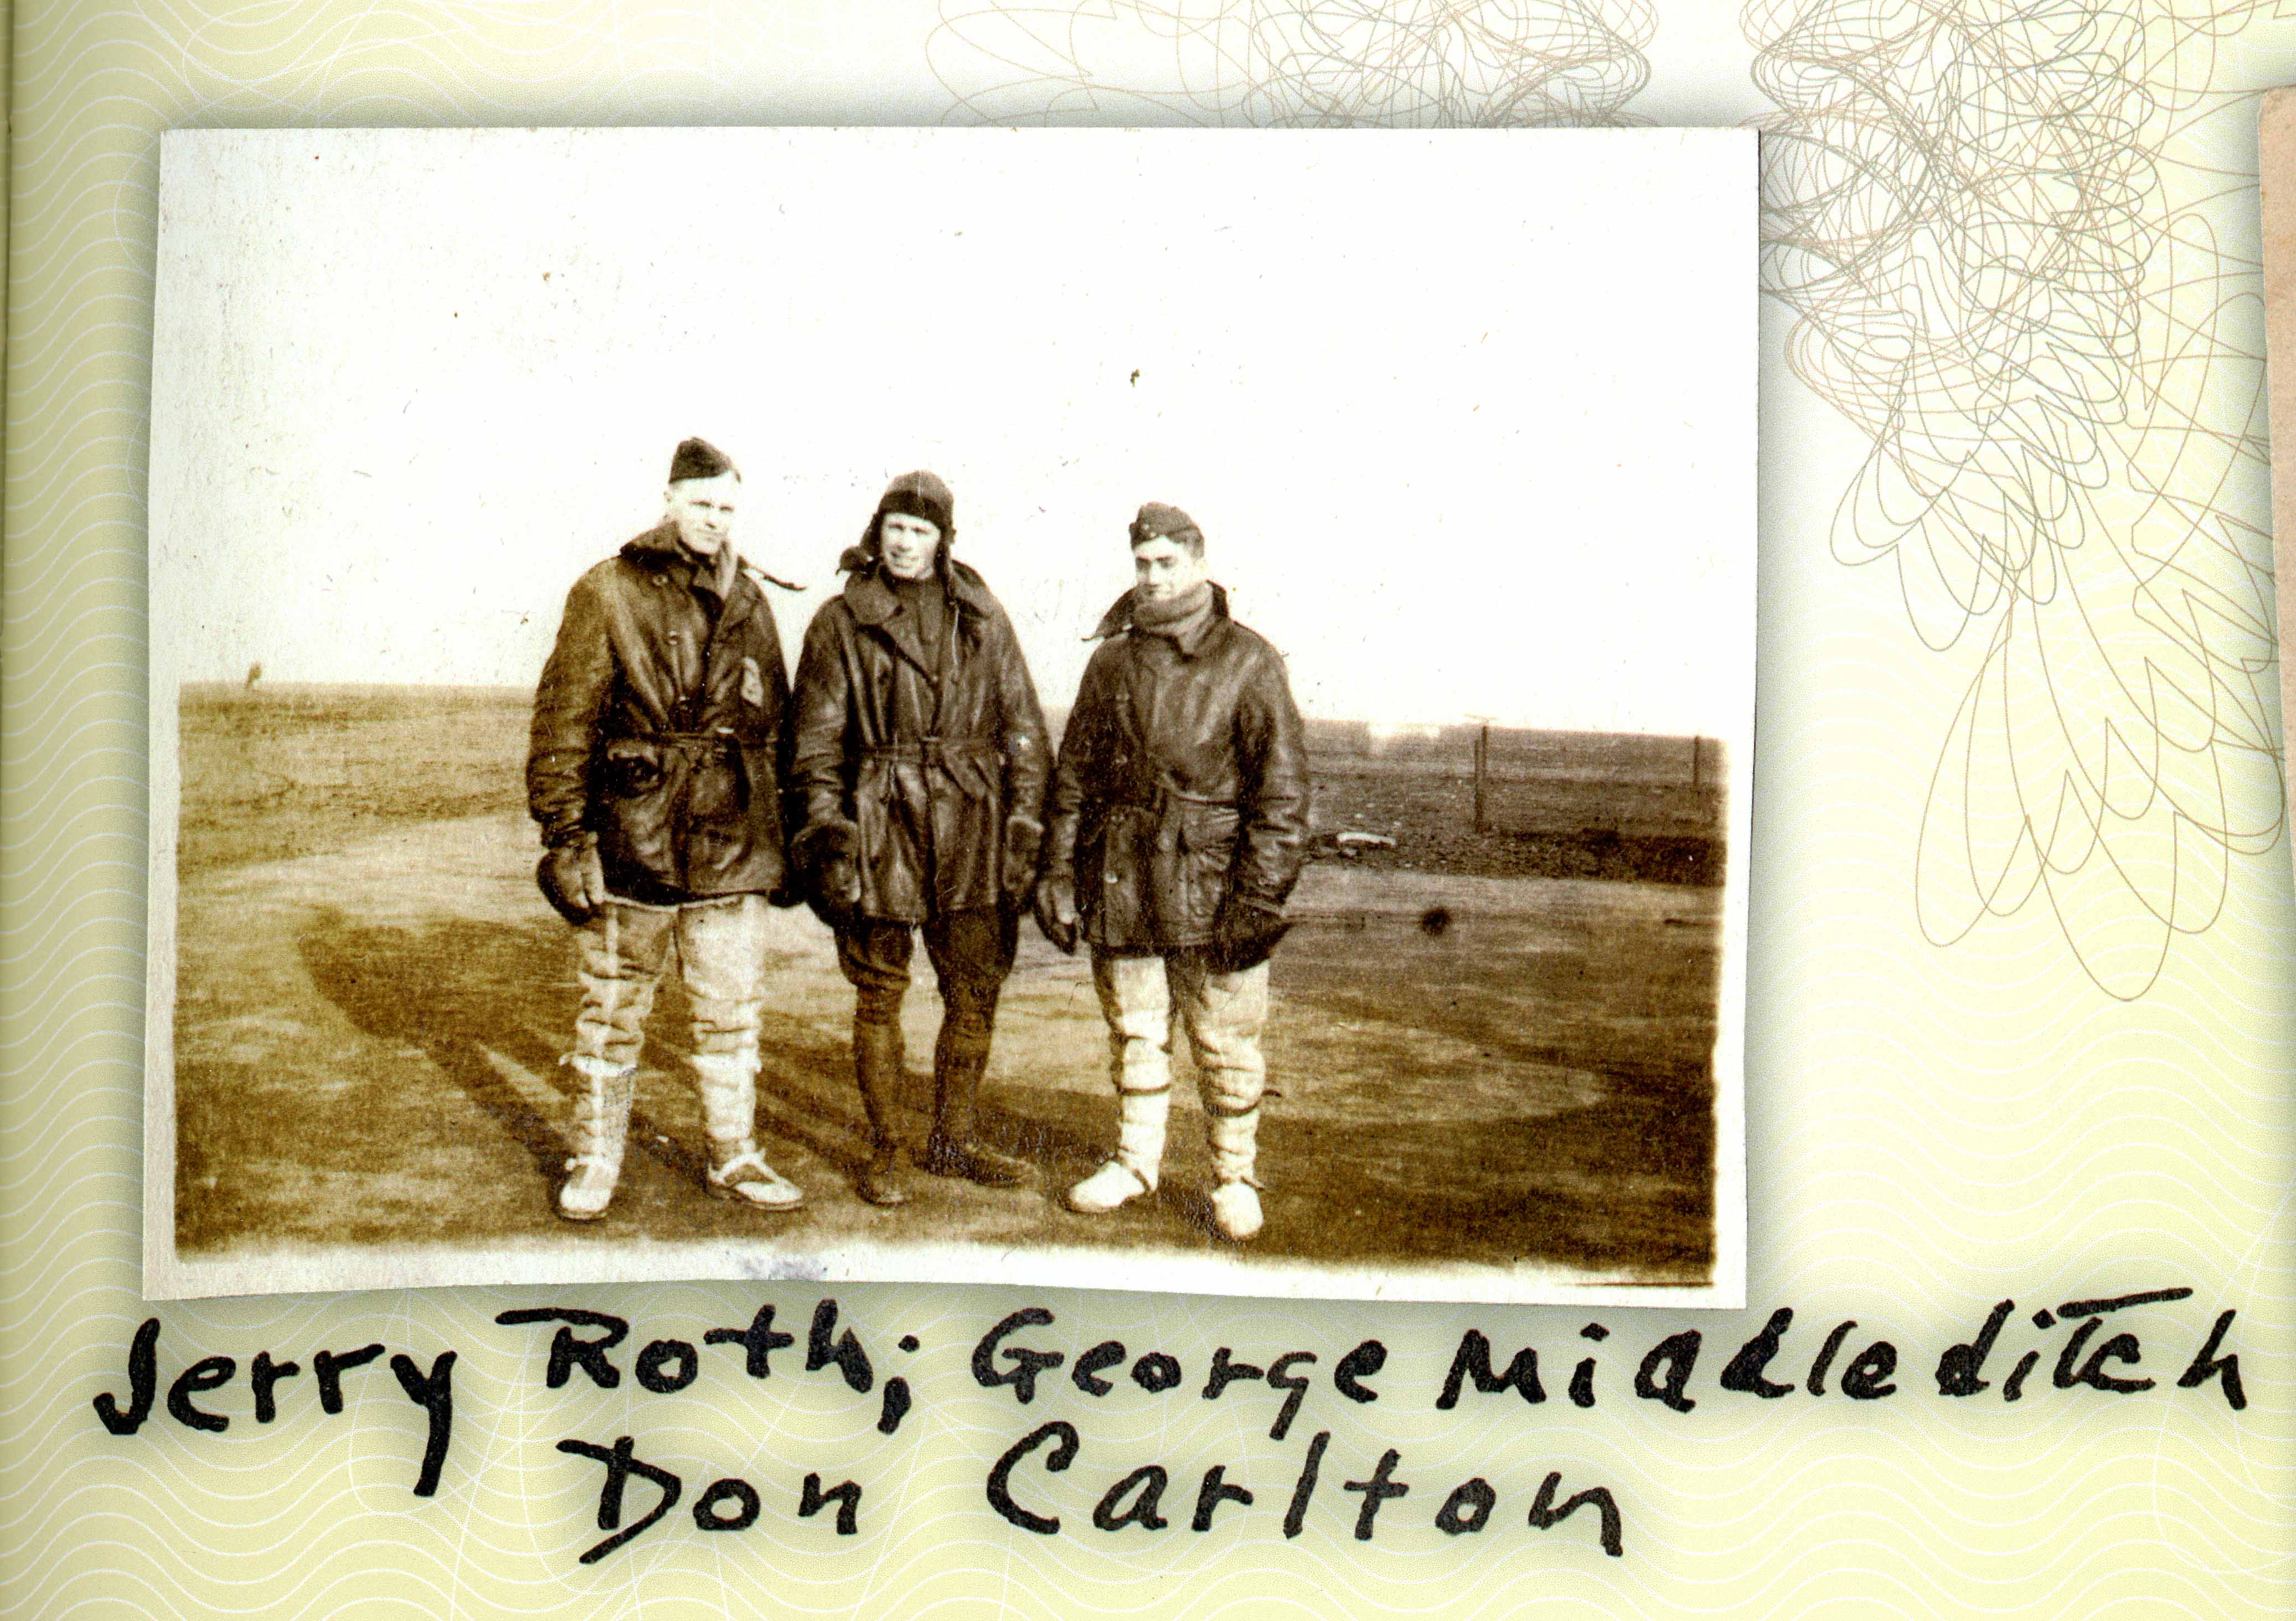 A photo of three men in flying clothes in a field.